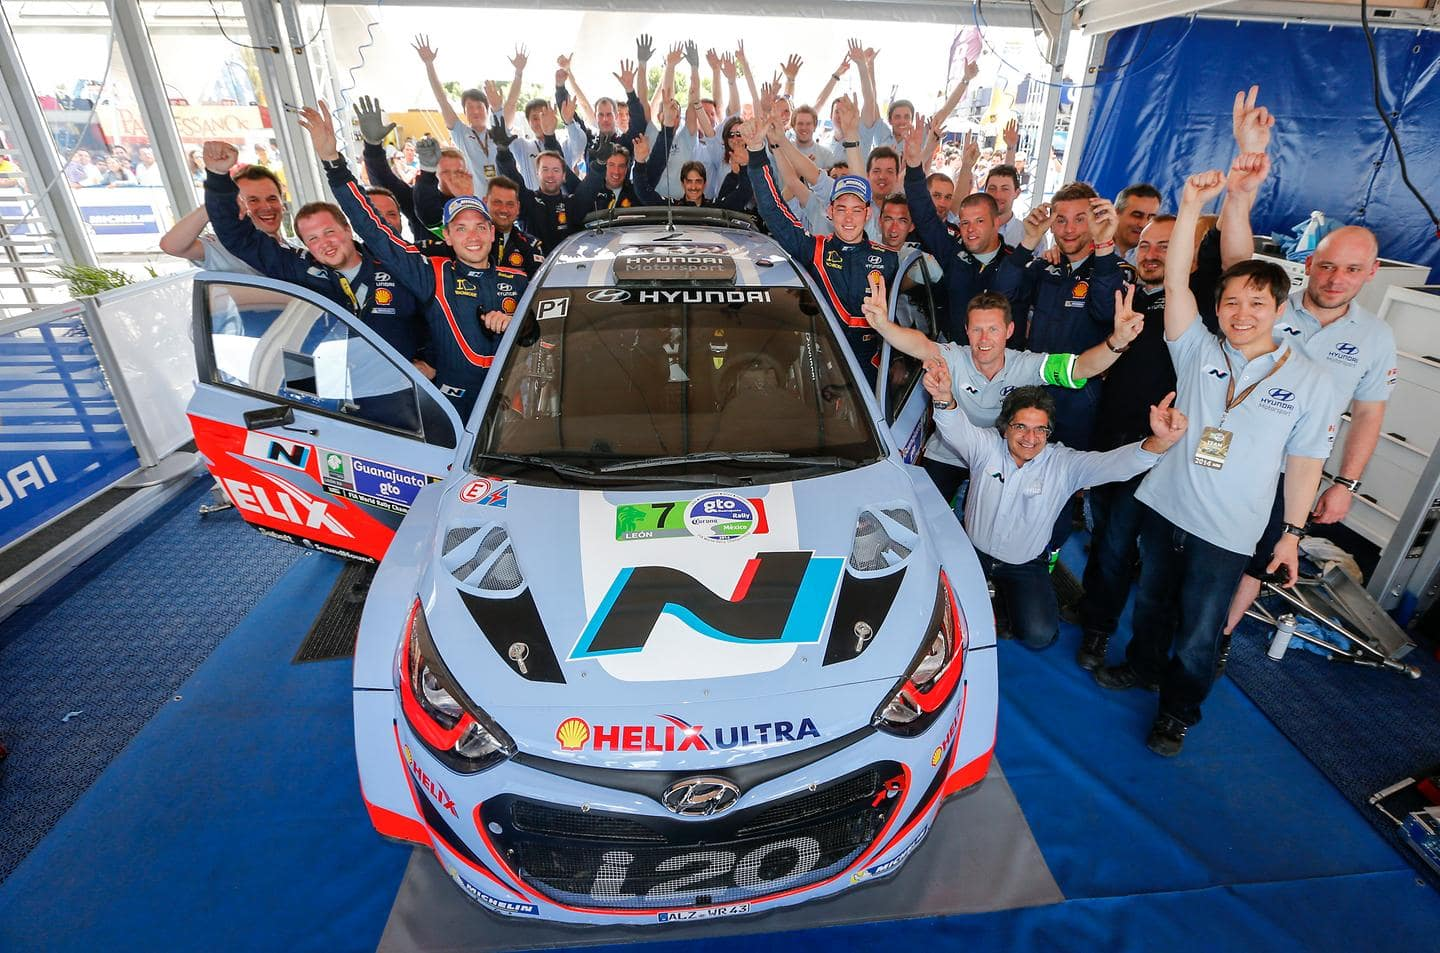 Twocar finish remains objective for Hyundai Shell World Rally Team after another solid day in Mexico